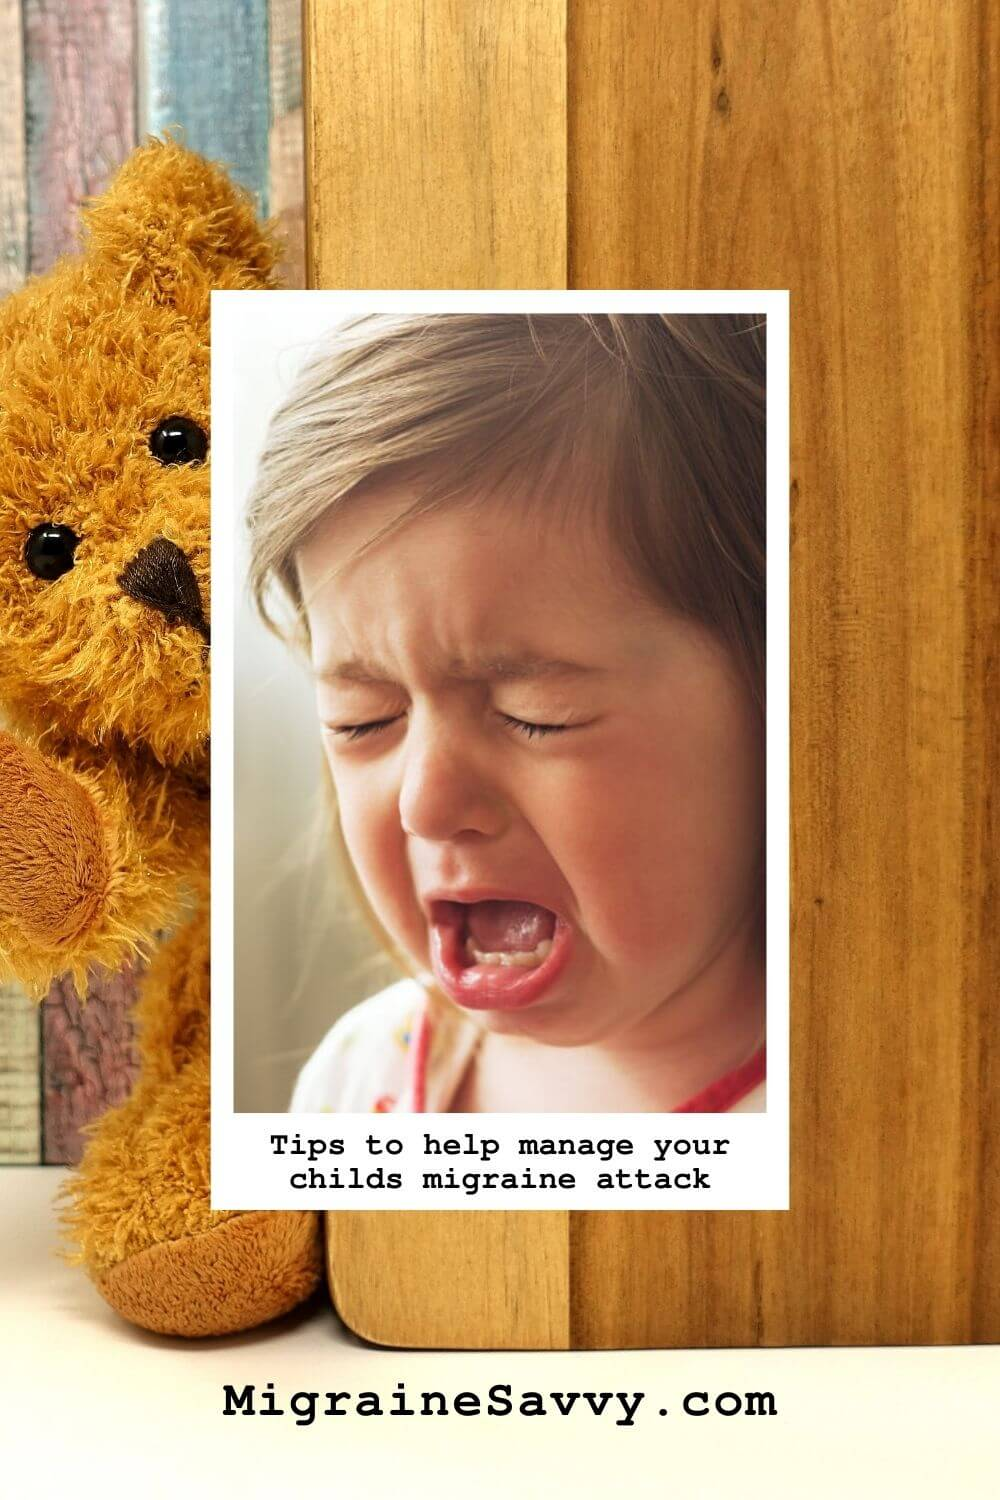 Tips to help your child deal with migraines @migrainesavvy #migrainerelief #stopmigraines #migraineheadaches